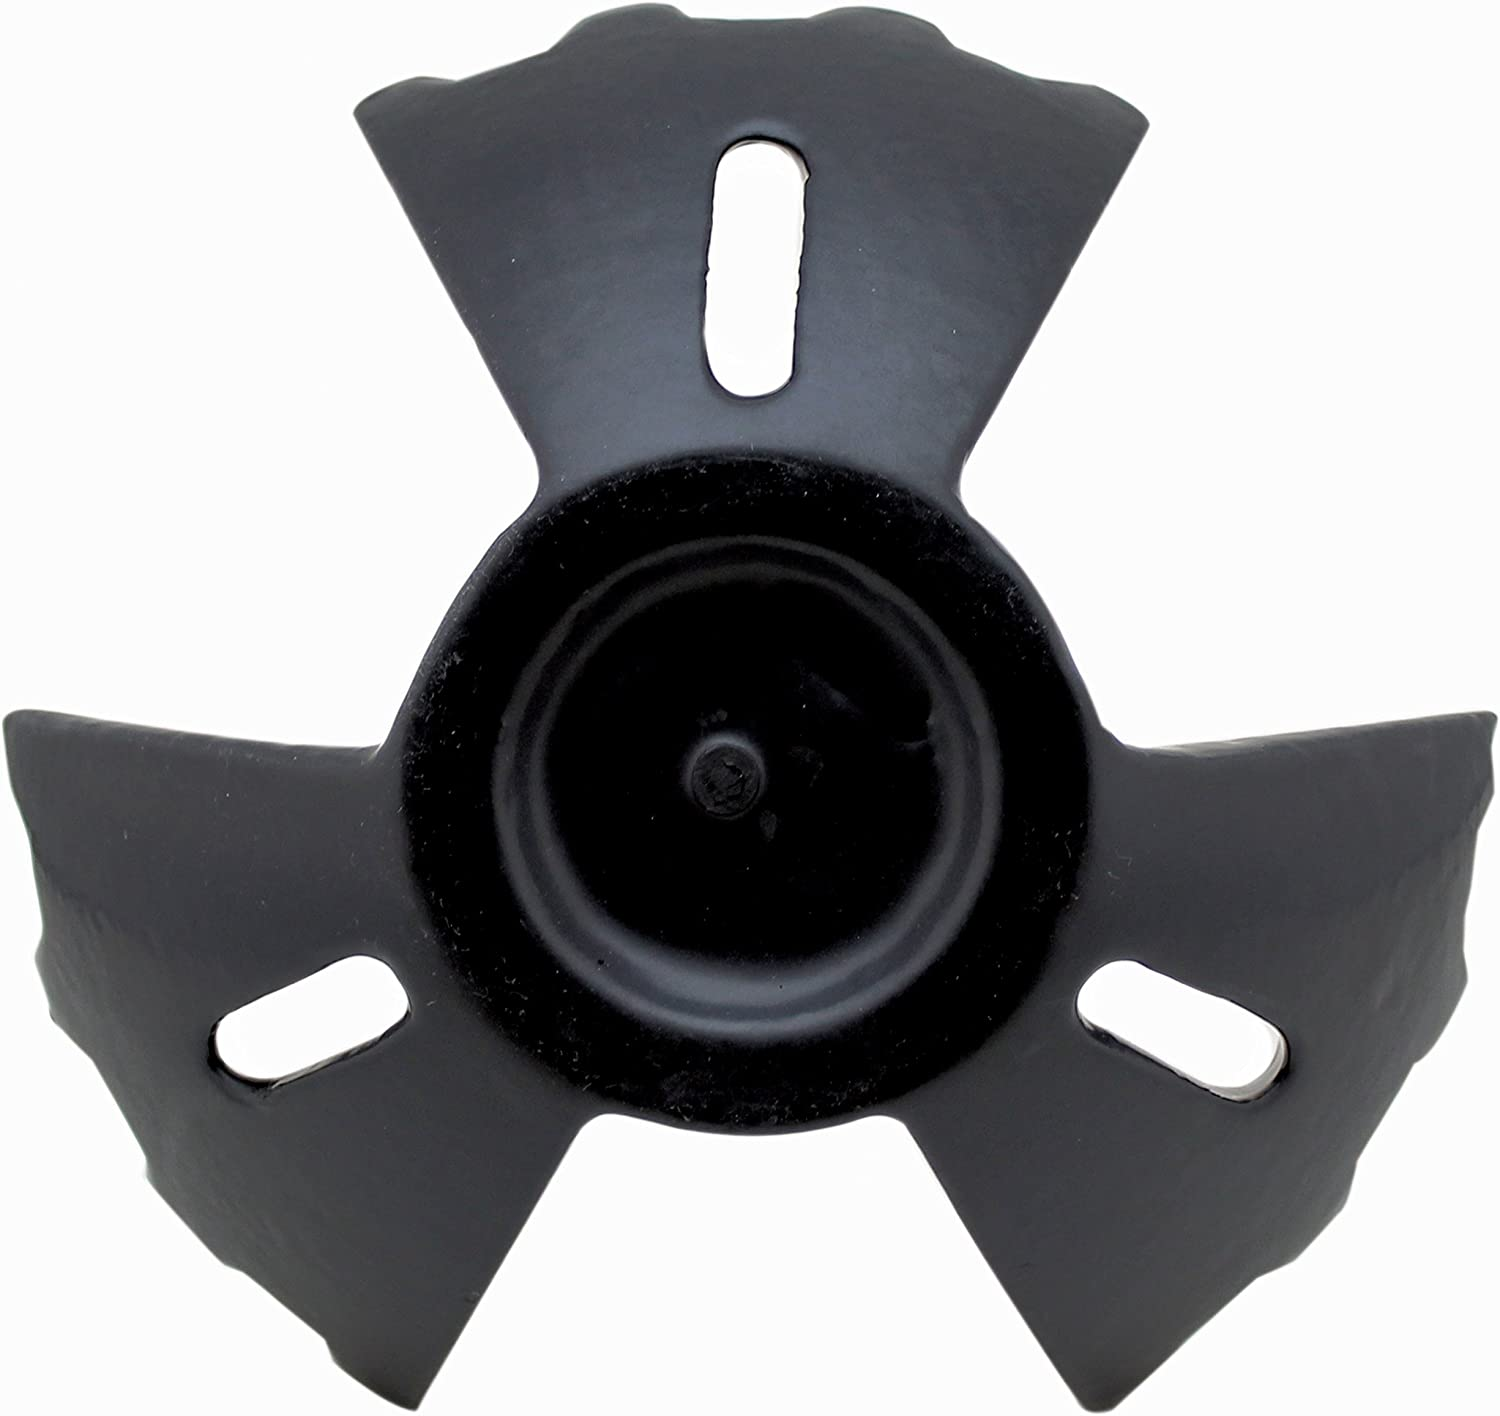 Extreme Max 3006.6560 BoatTector Vinyl-Coated River Anchor 30 lbs.